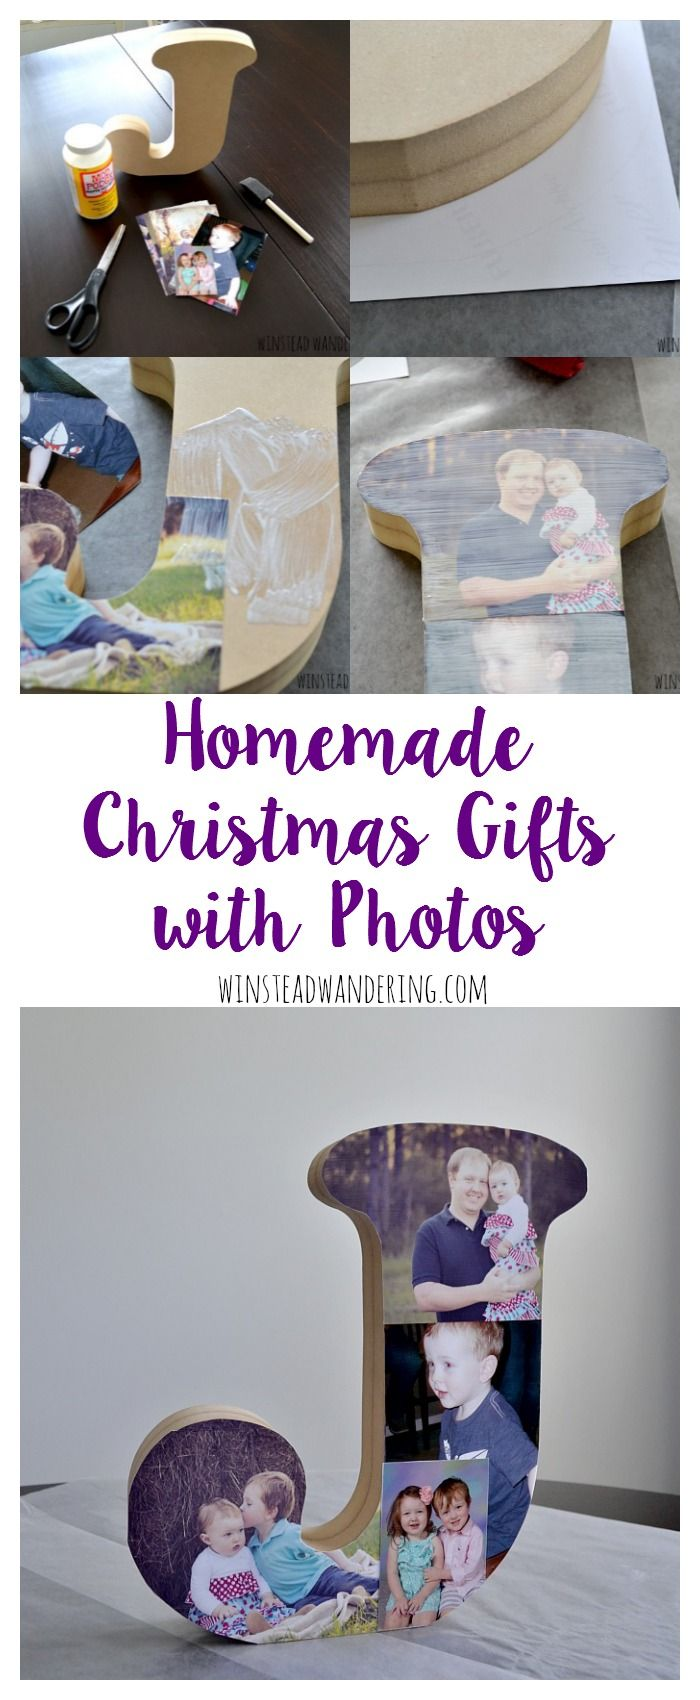 Homemade Christmas Gifts | winstead wandering | Pinterest | Homemade ...